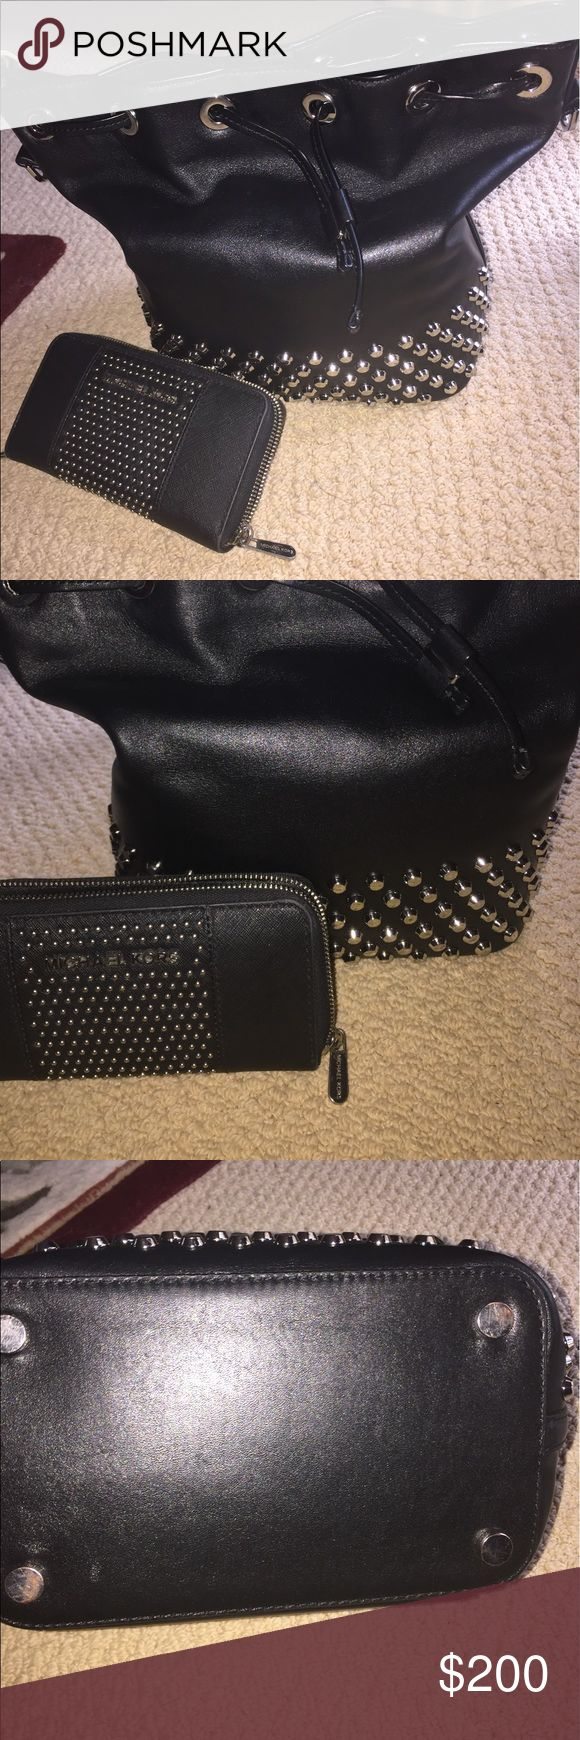 Michael Kors studded purse set Like new Michael Kors  studded  purse set. In great condition the only thing is that the L and Michael fell off the bag Michael Kors Bags Shoulder Bags